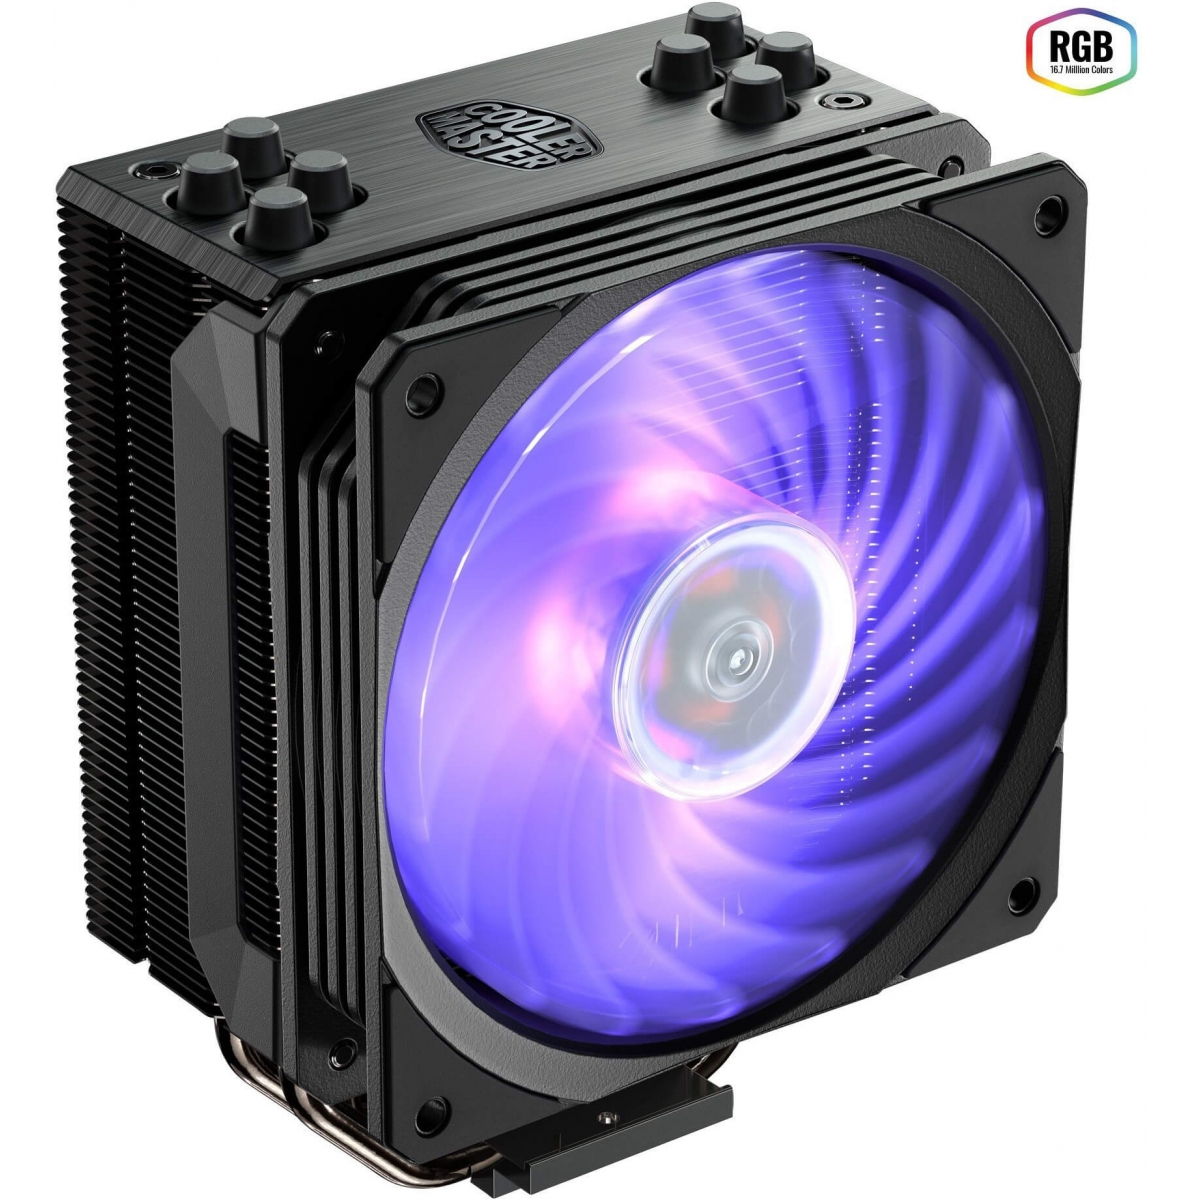 Cooler para Processador Cooler Master Hyper 212 RGB 120mm, Intel-AMD, RR-212S-20PC-R1